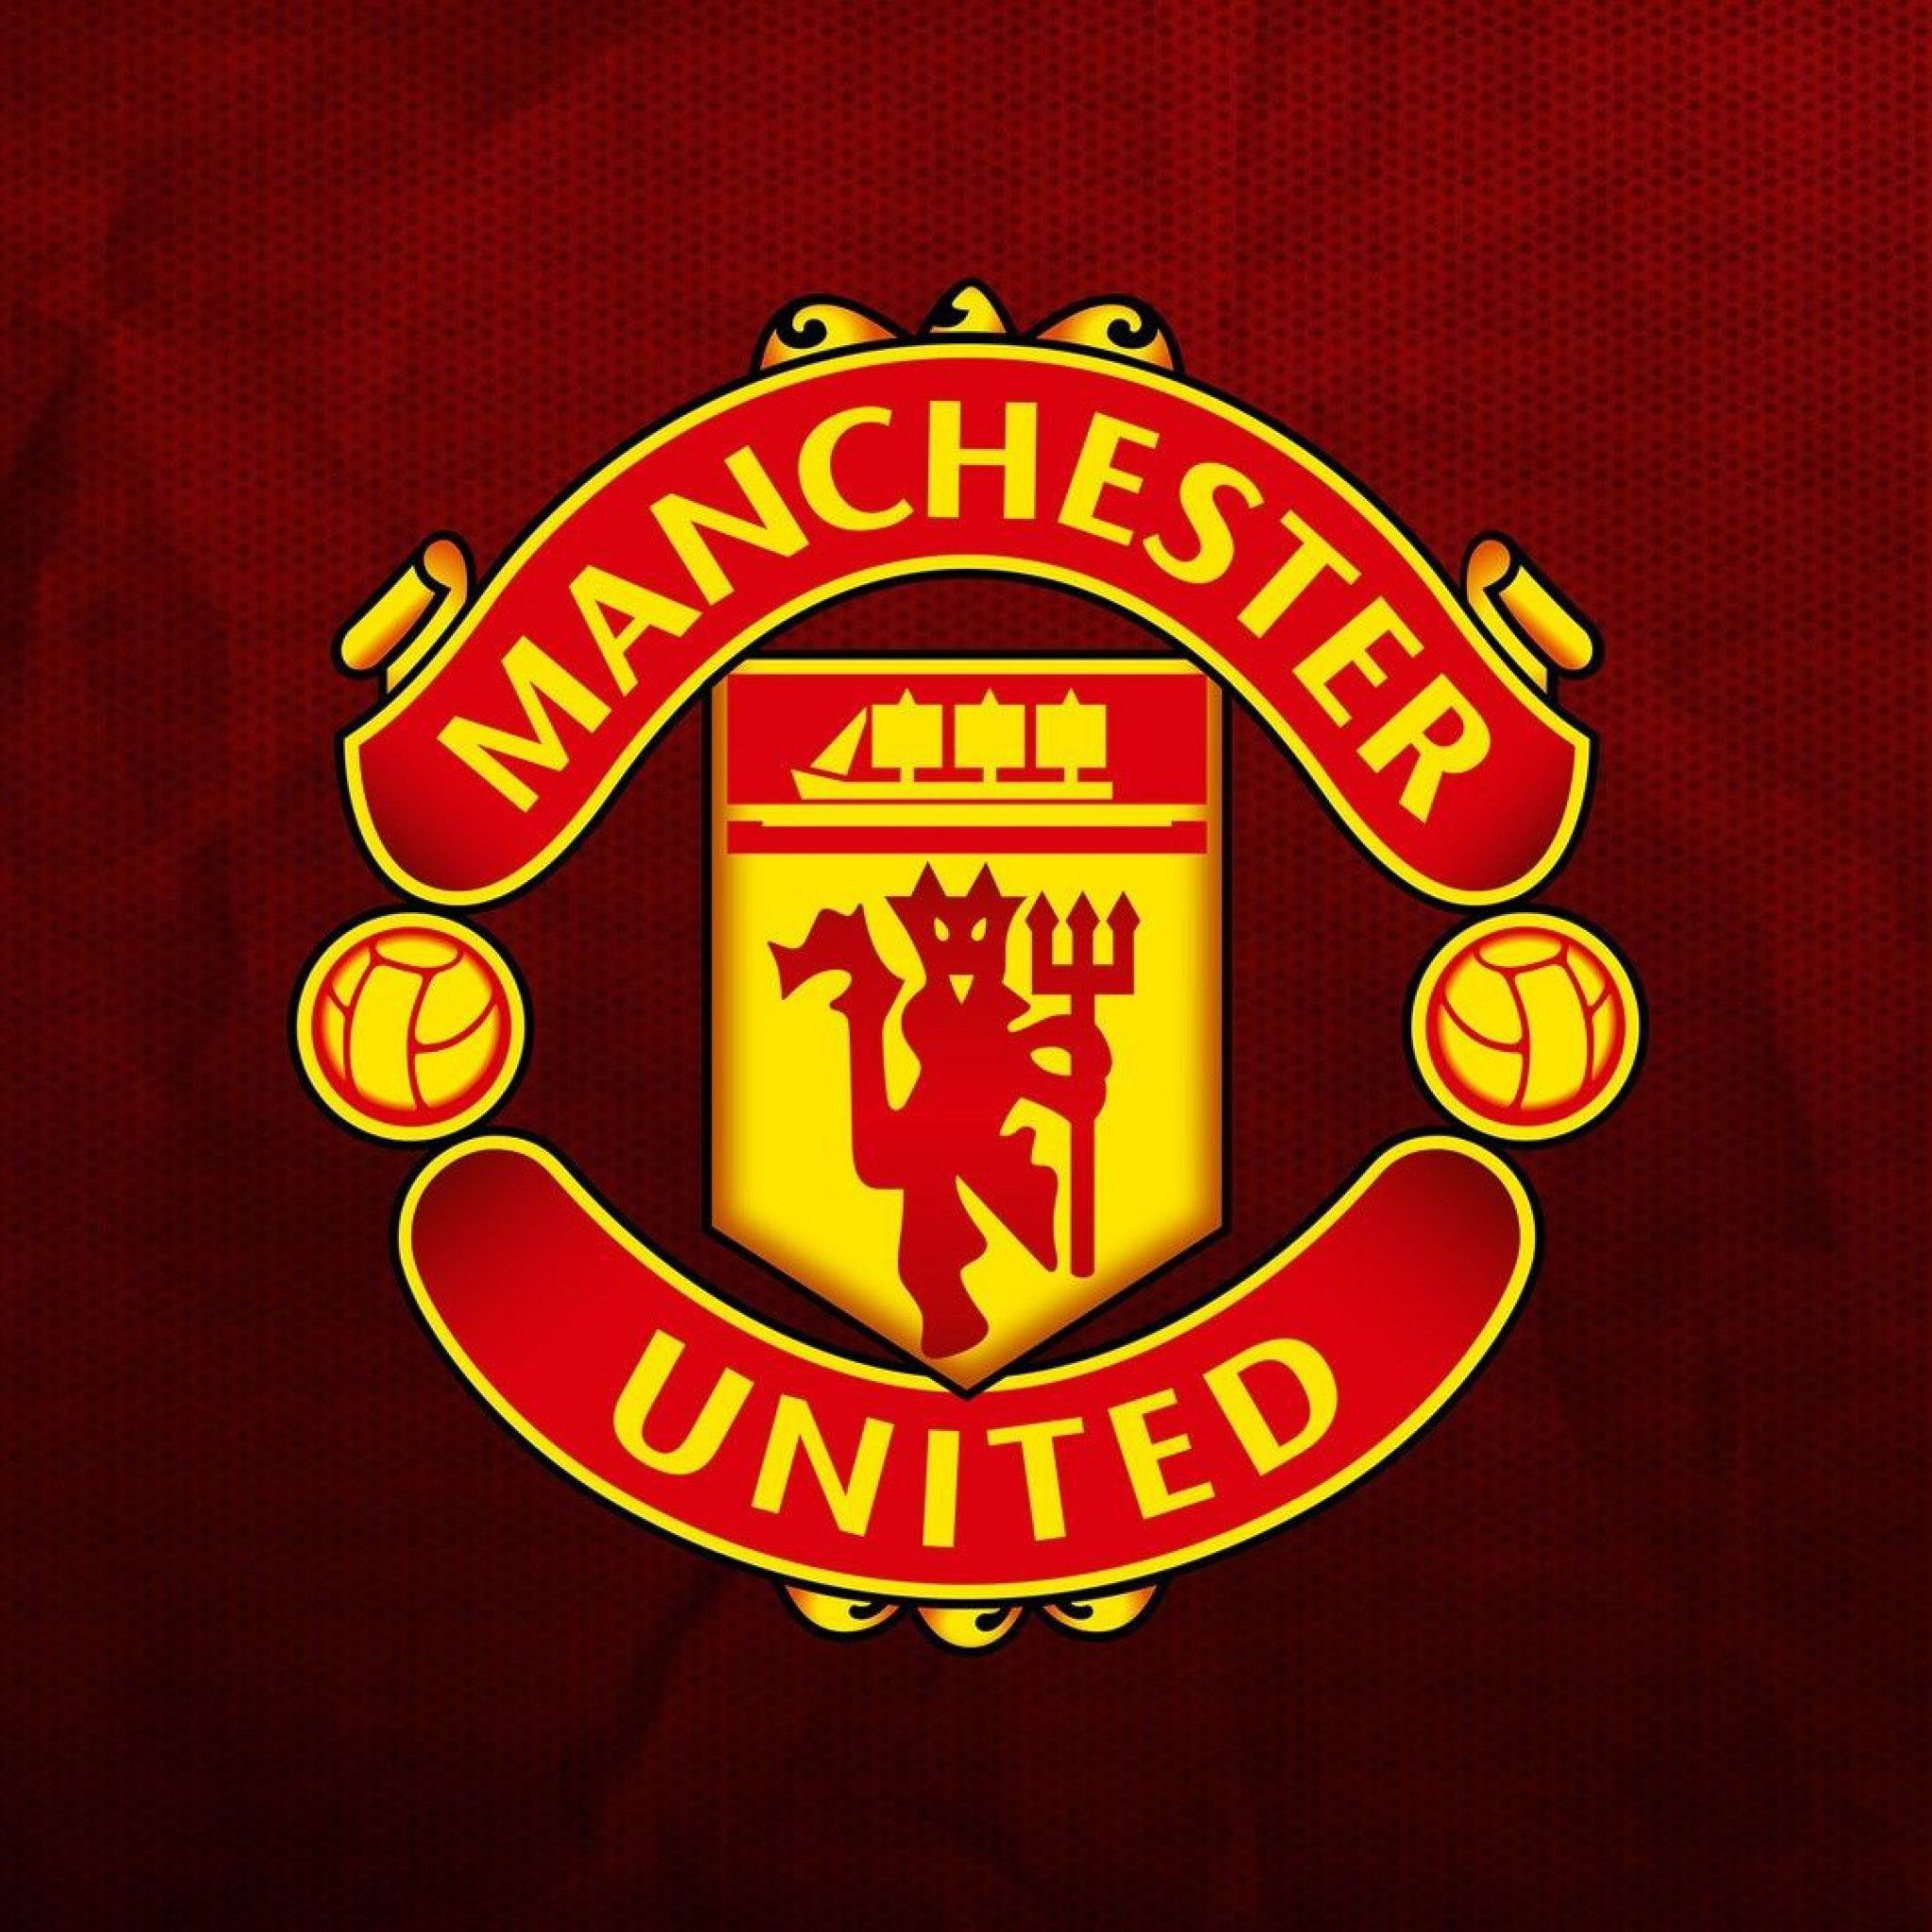 Manchester United Logo - Manchester United Wallpaper | Manchester United Logo | Manchester ...